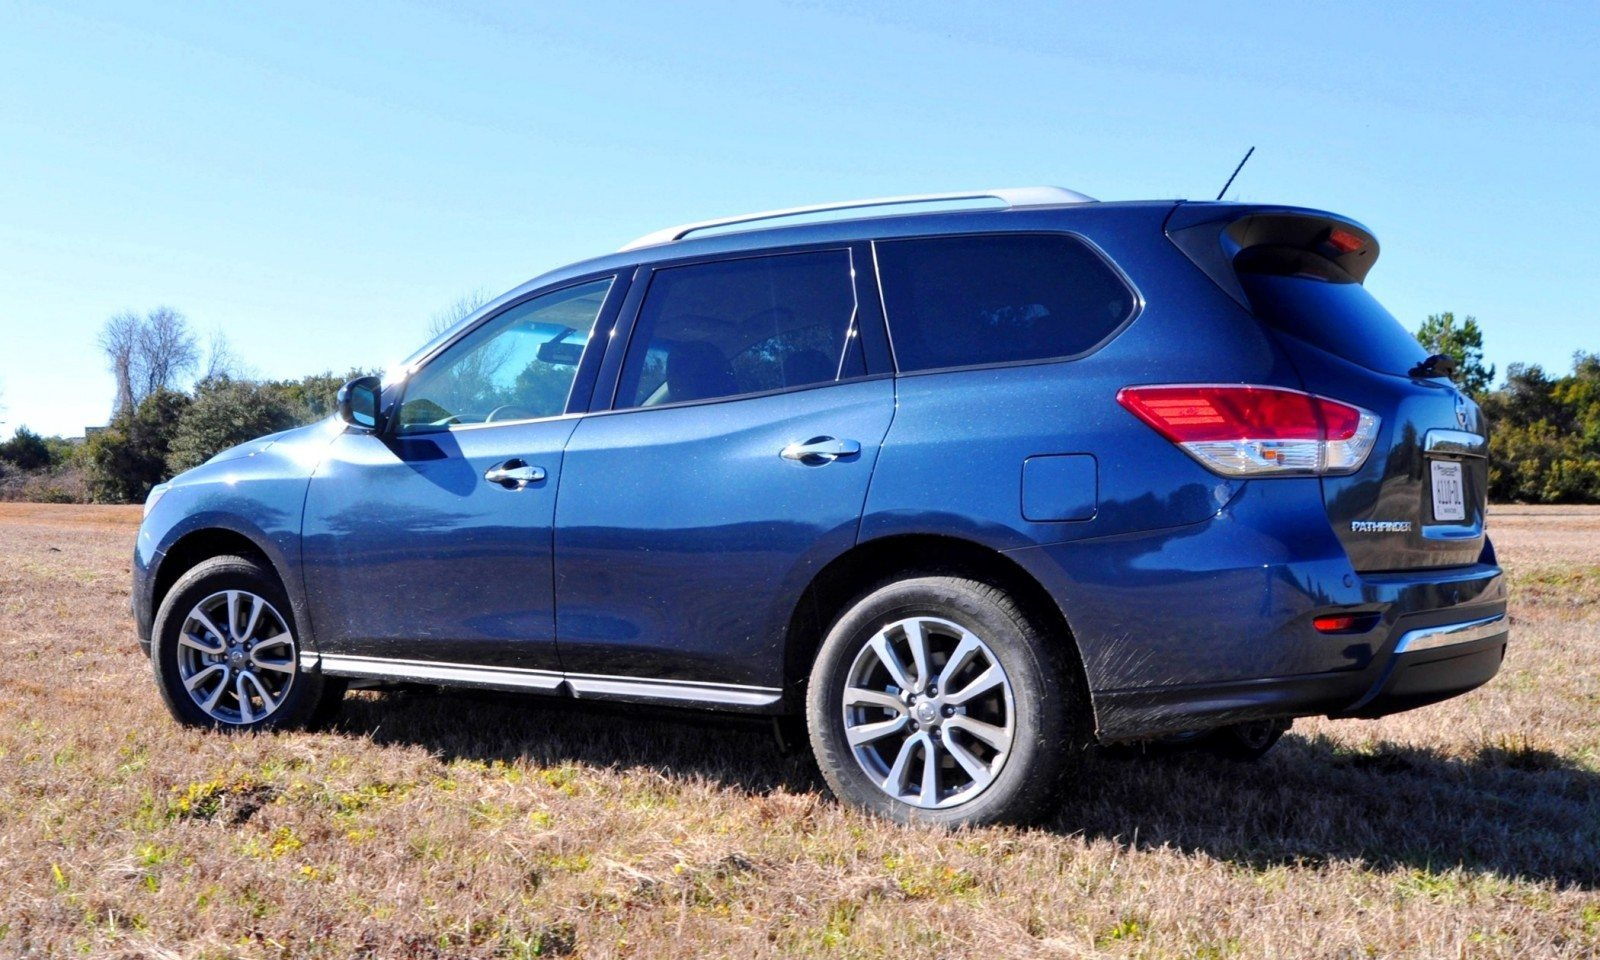 Road Test Review - 2015 Nissan Pathfinder SV 4WD 97